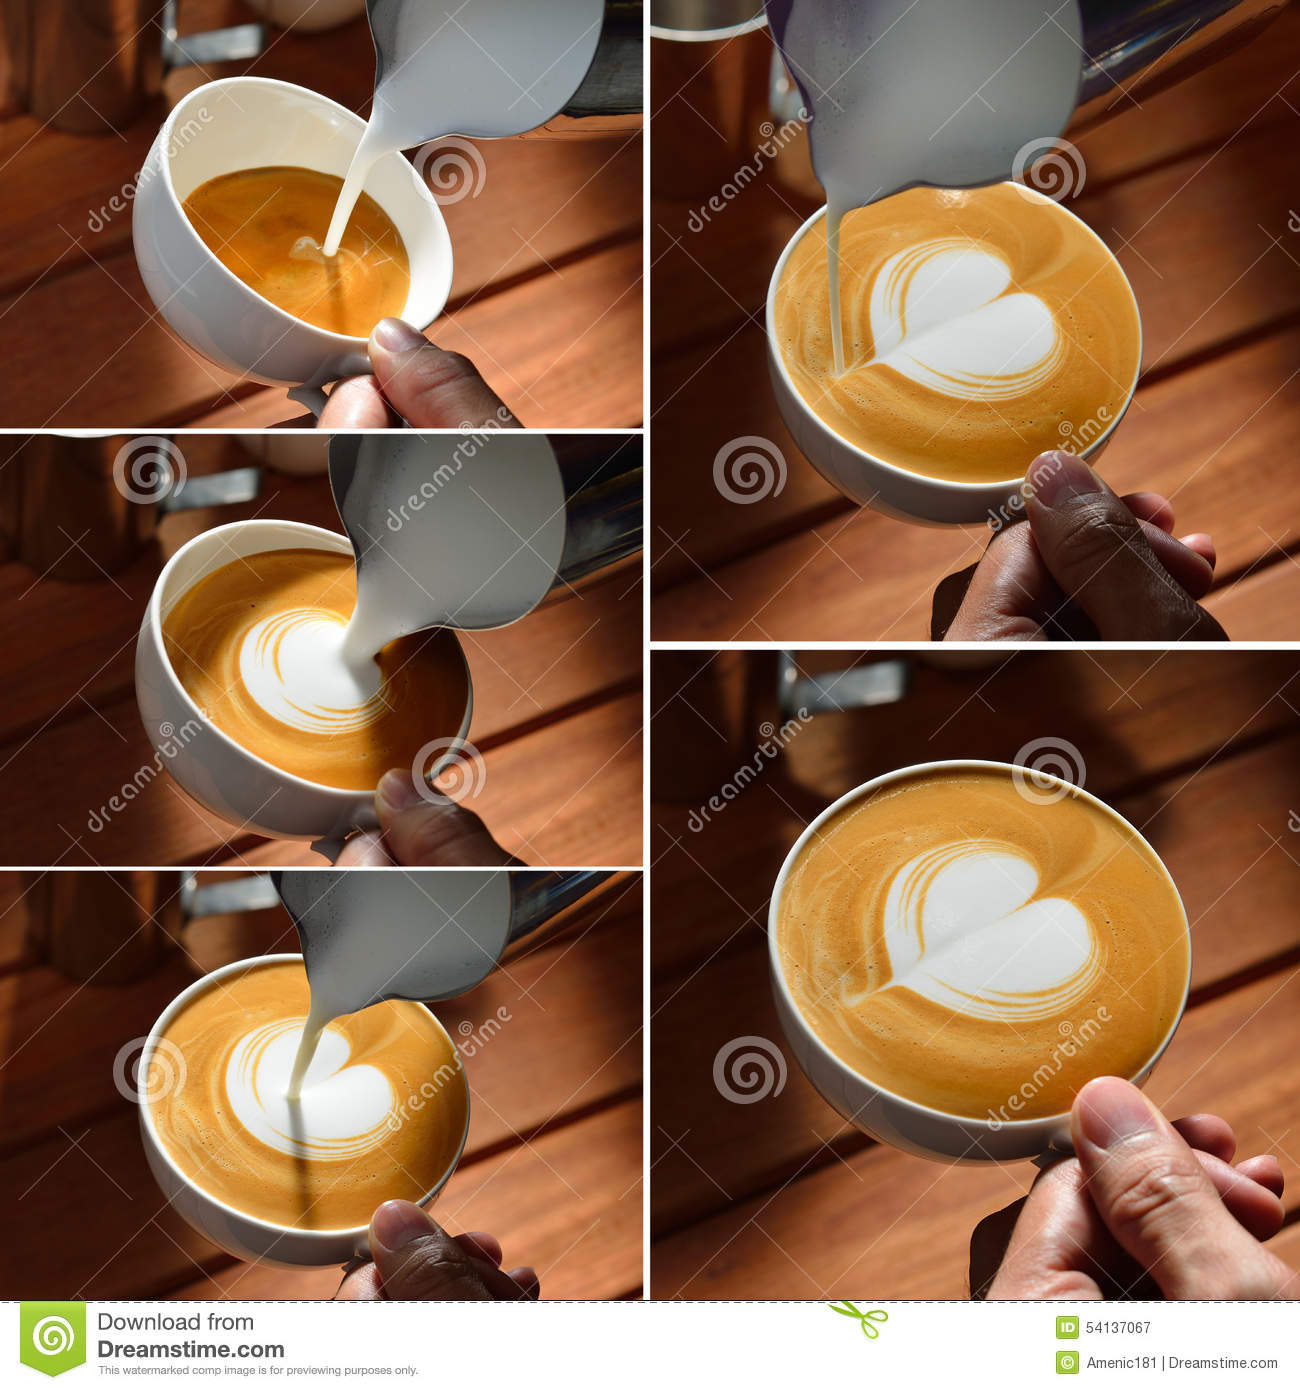 Cafe Latte Art Stock Image. Image Of Aroma, Drink